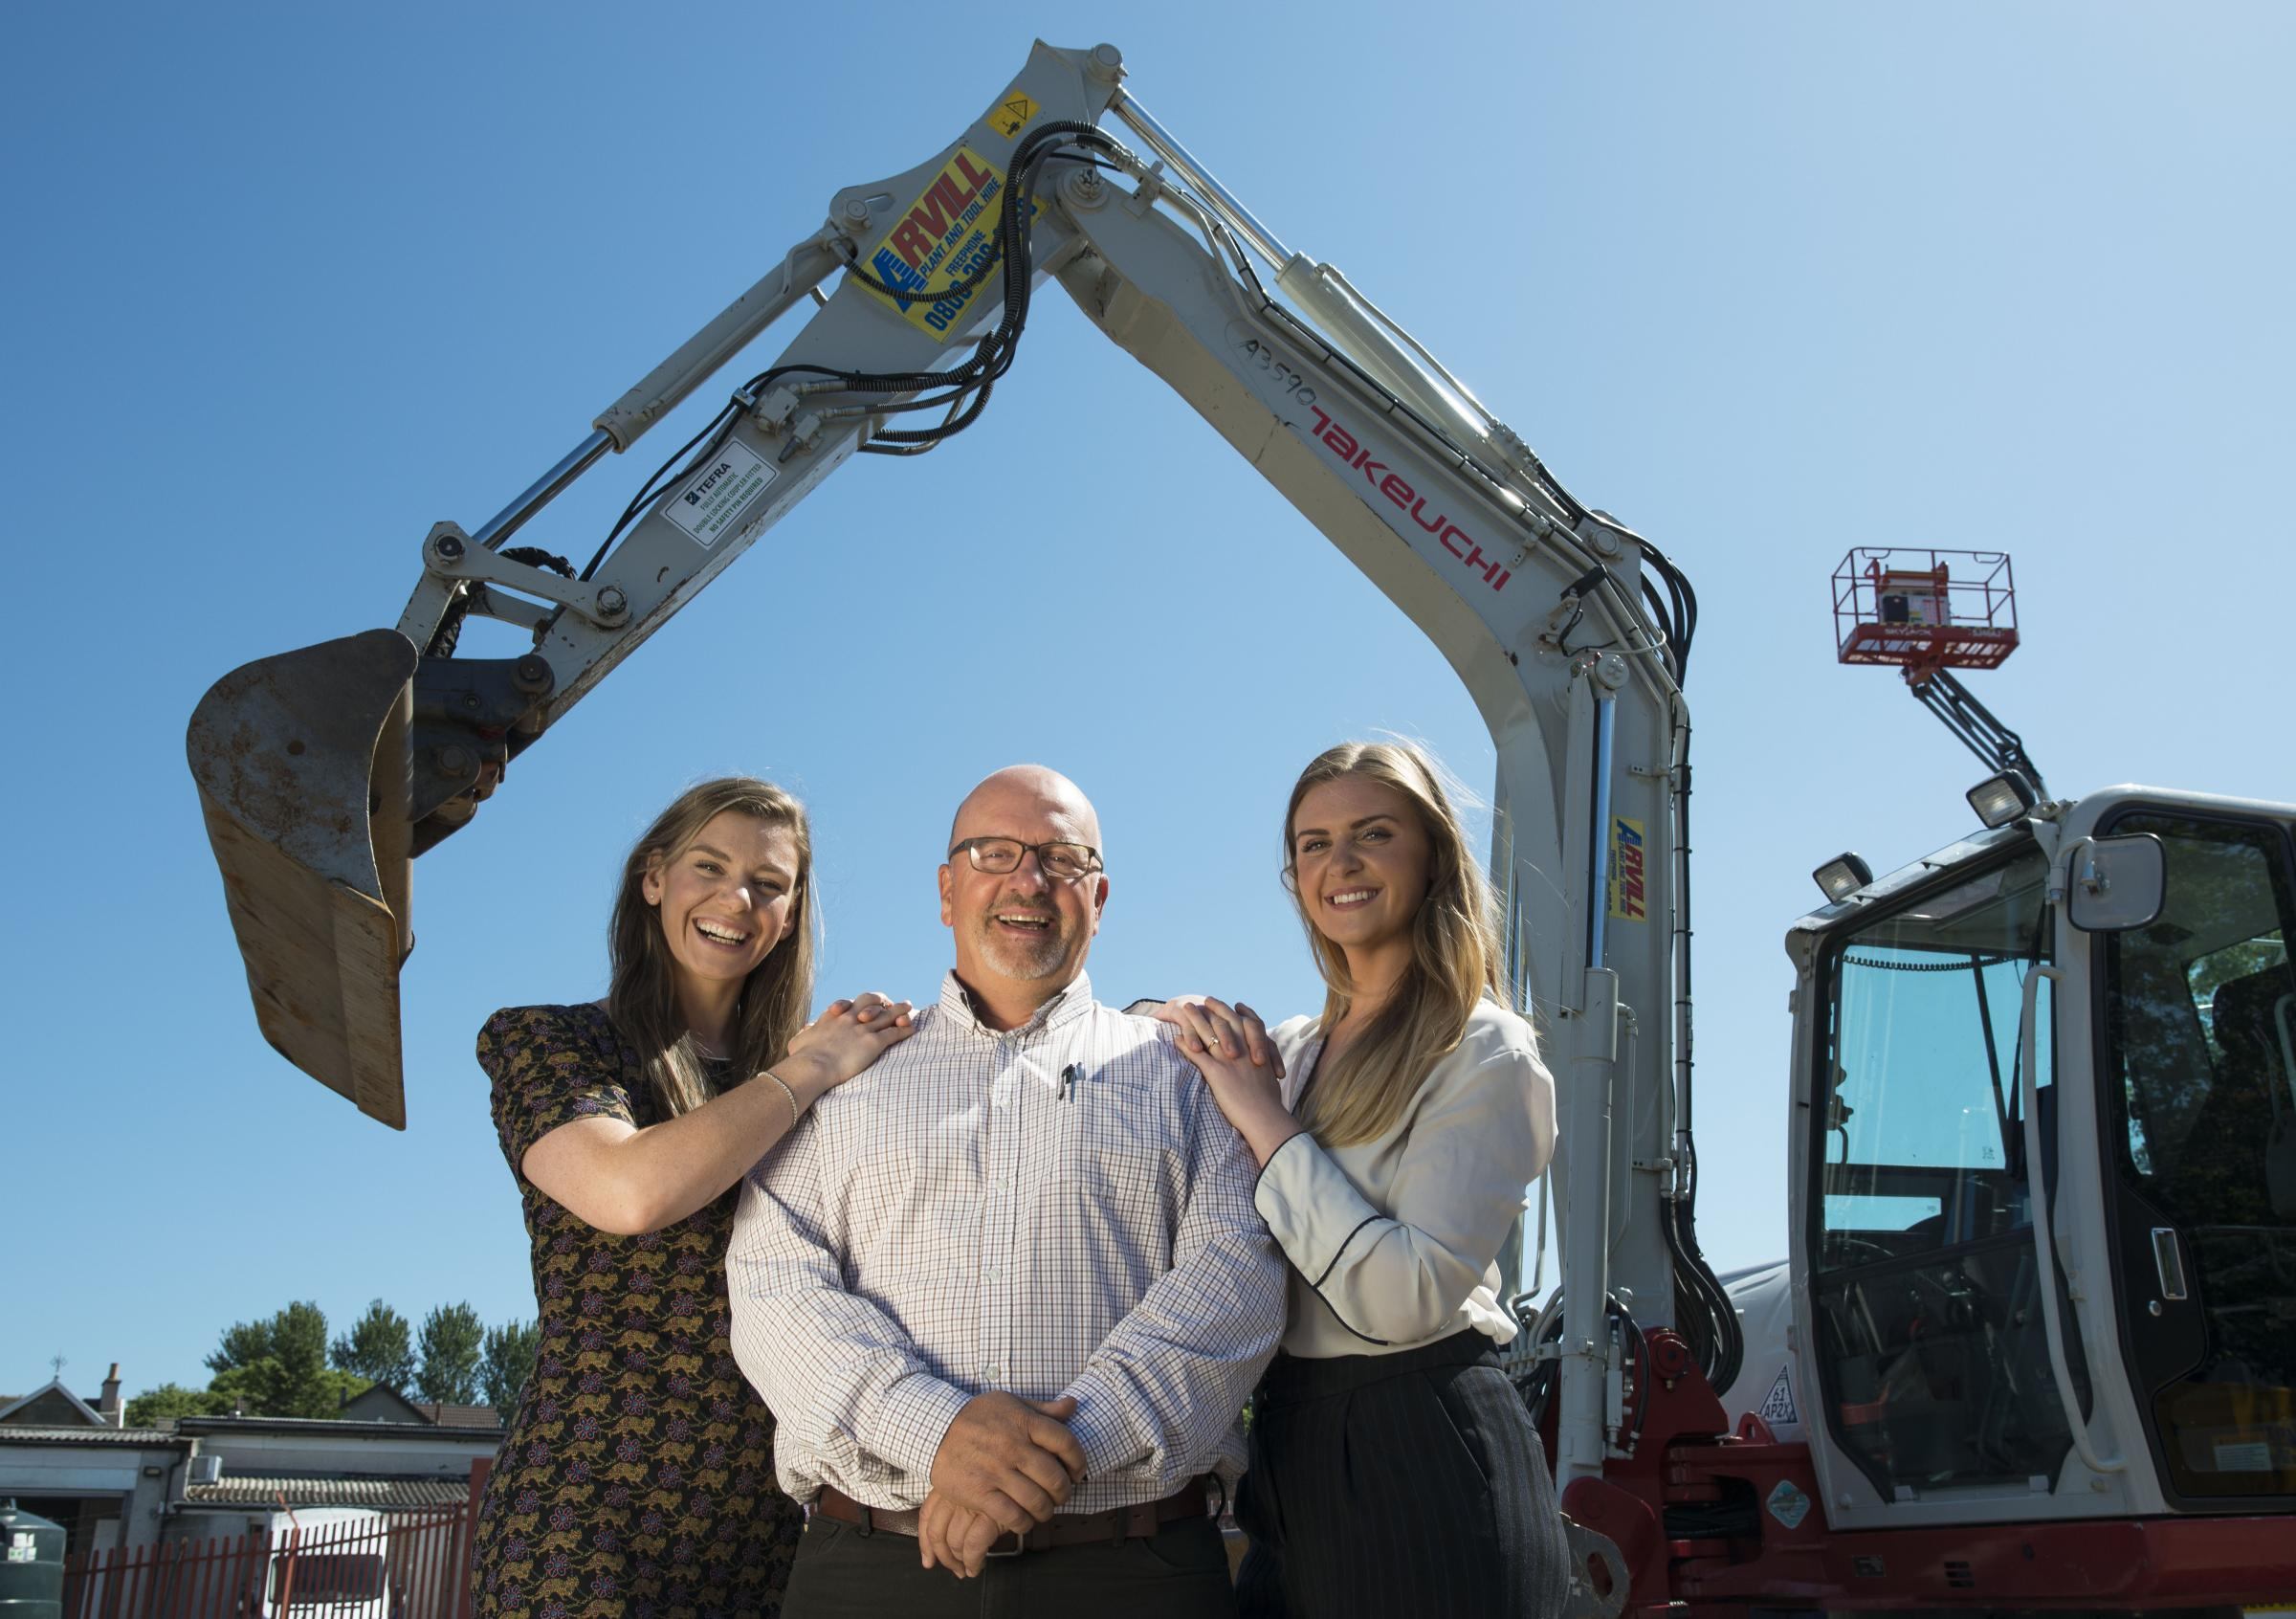 Hayley Shevill, right, pictured, with father Arthur and sister Amy at the site of their family's Arvill plant and tool hire business in Airdrie.